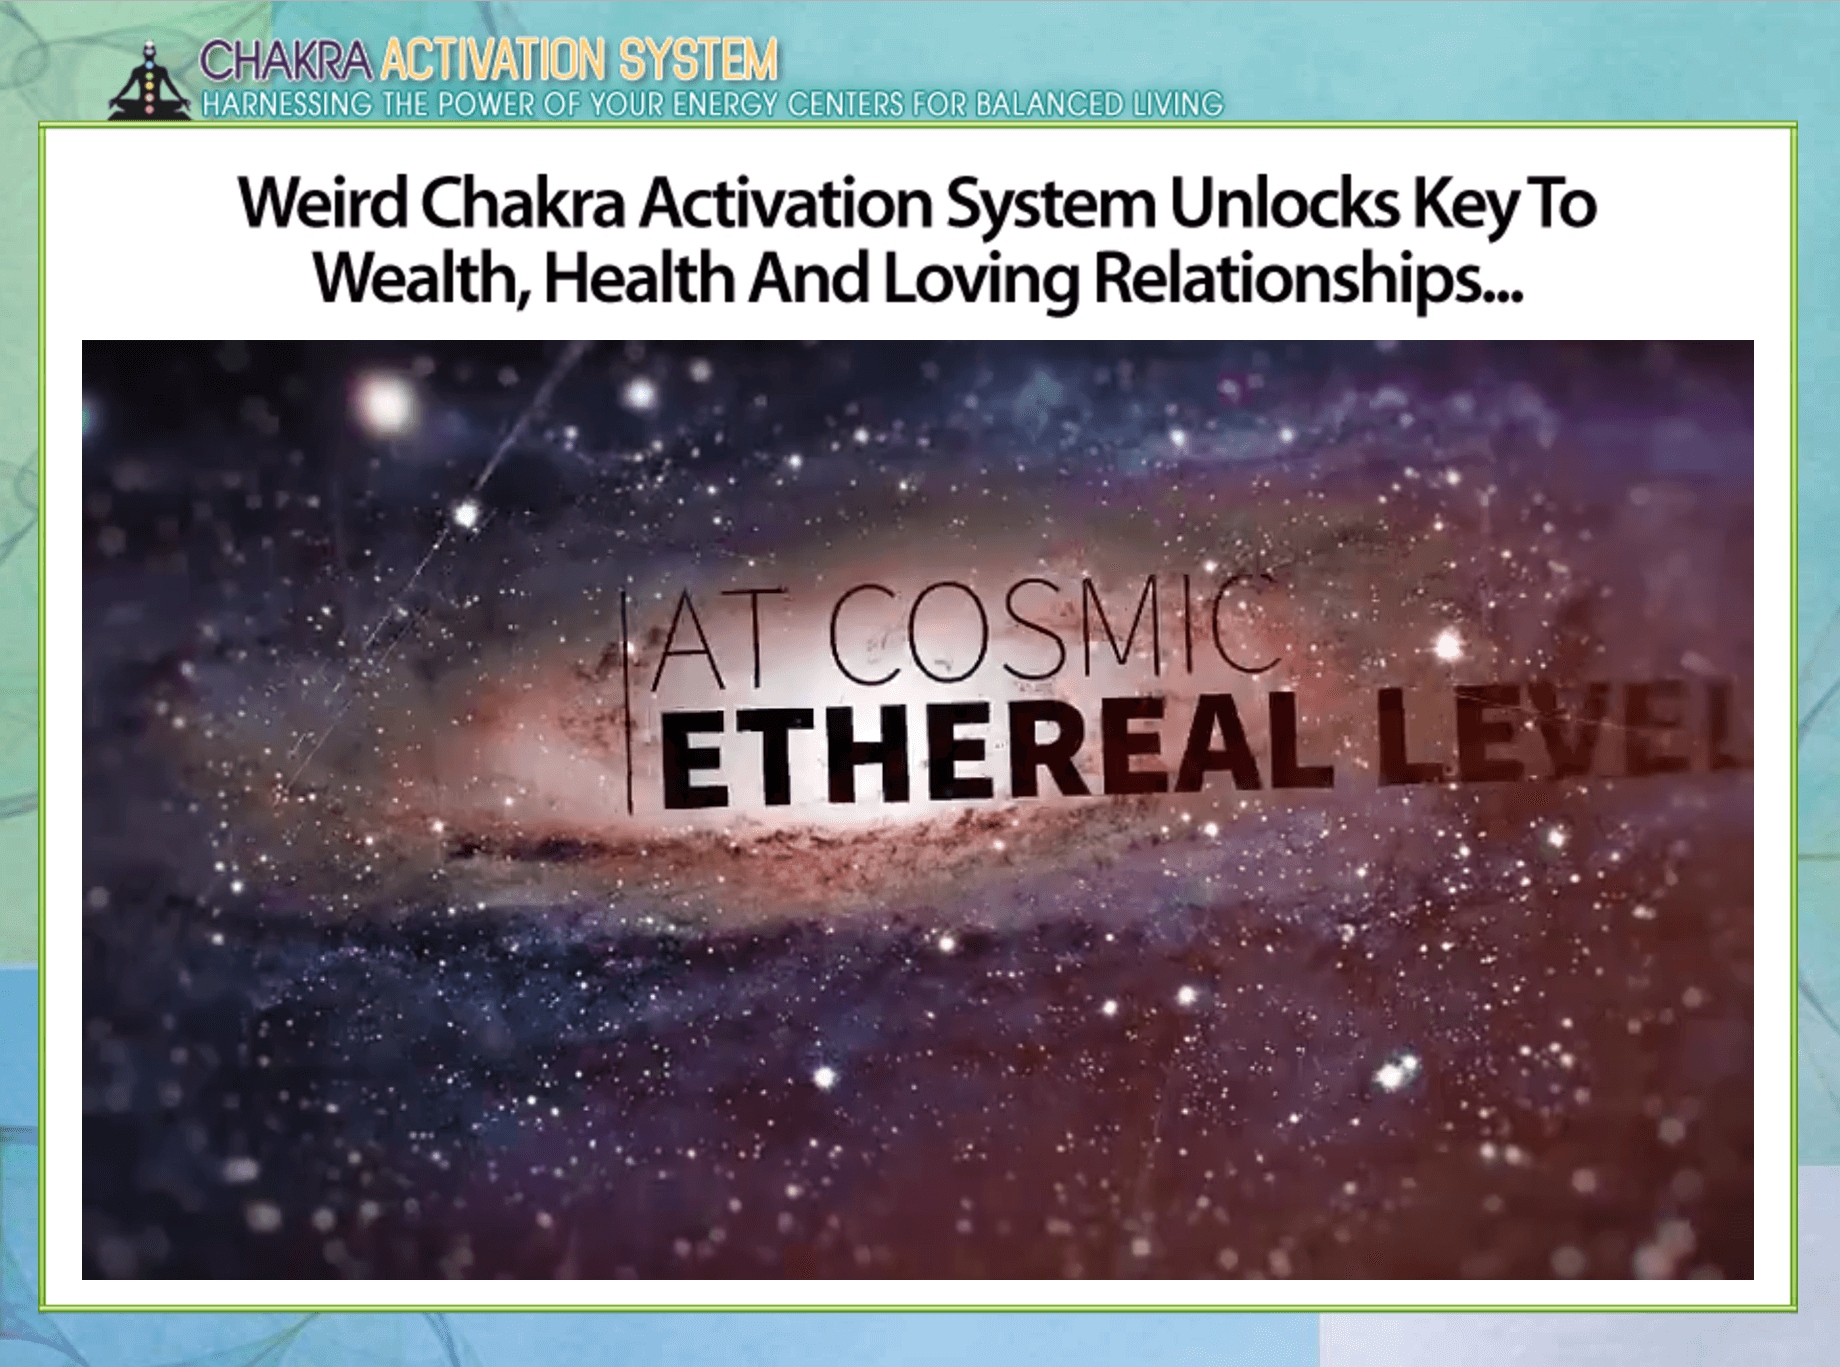 Unlocks the key to wealth, health and loving relationships